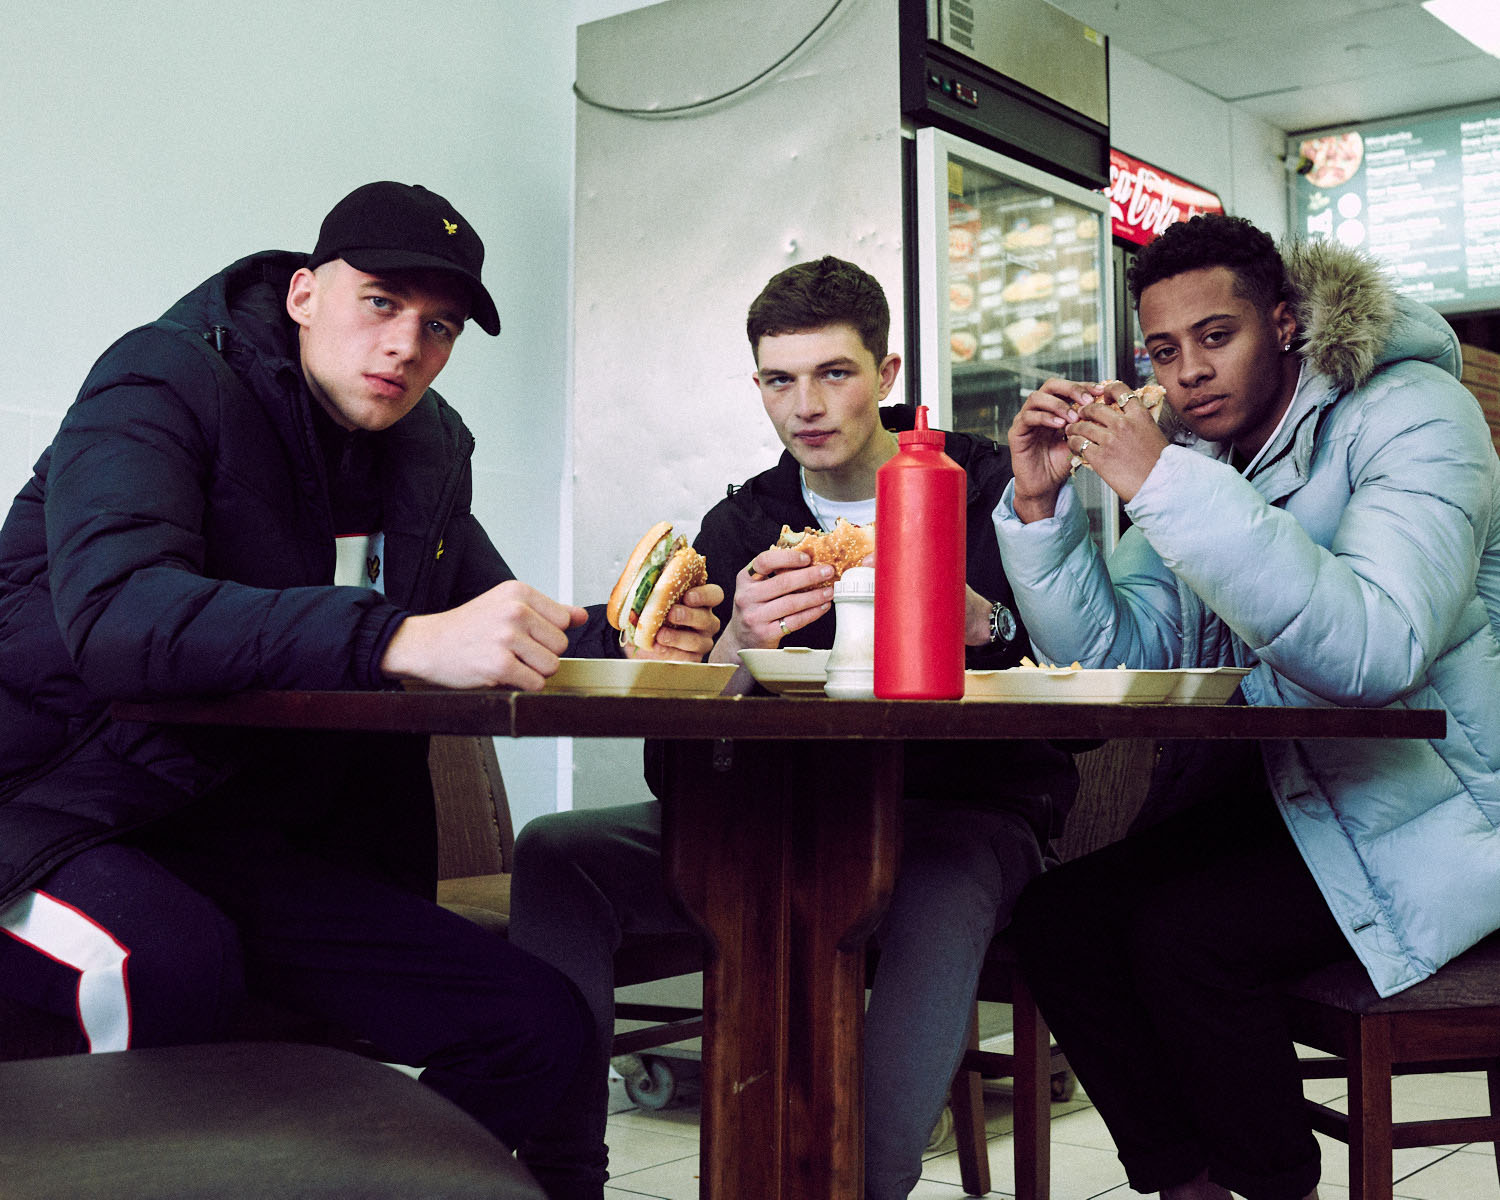 3 Ladst, in kebab shop by lifestyle photographer Tim Cole